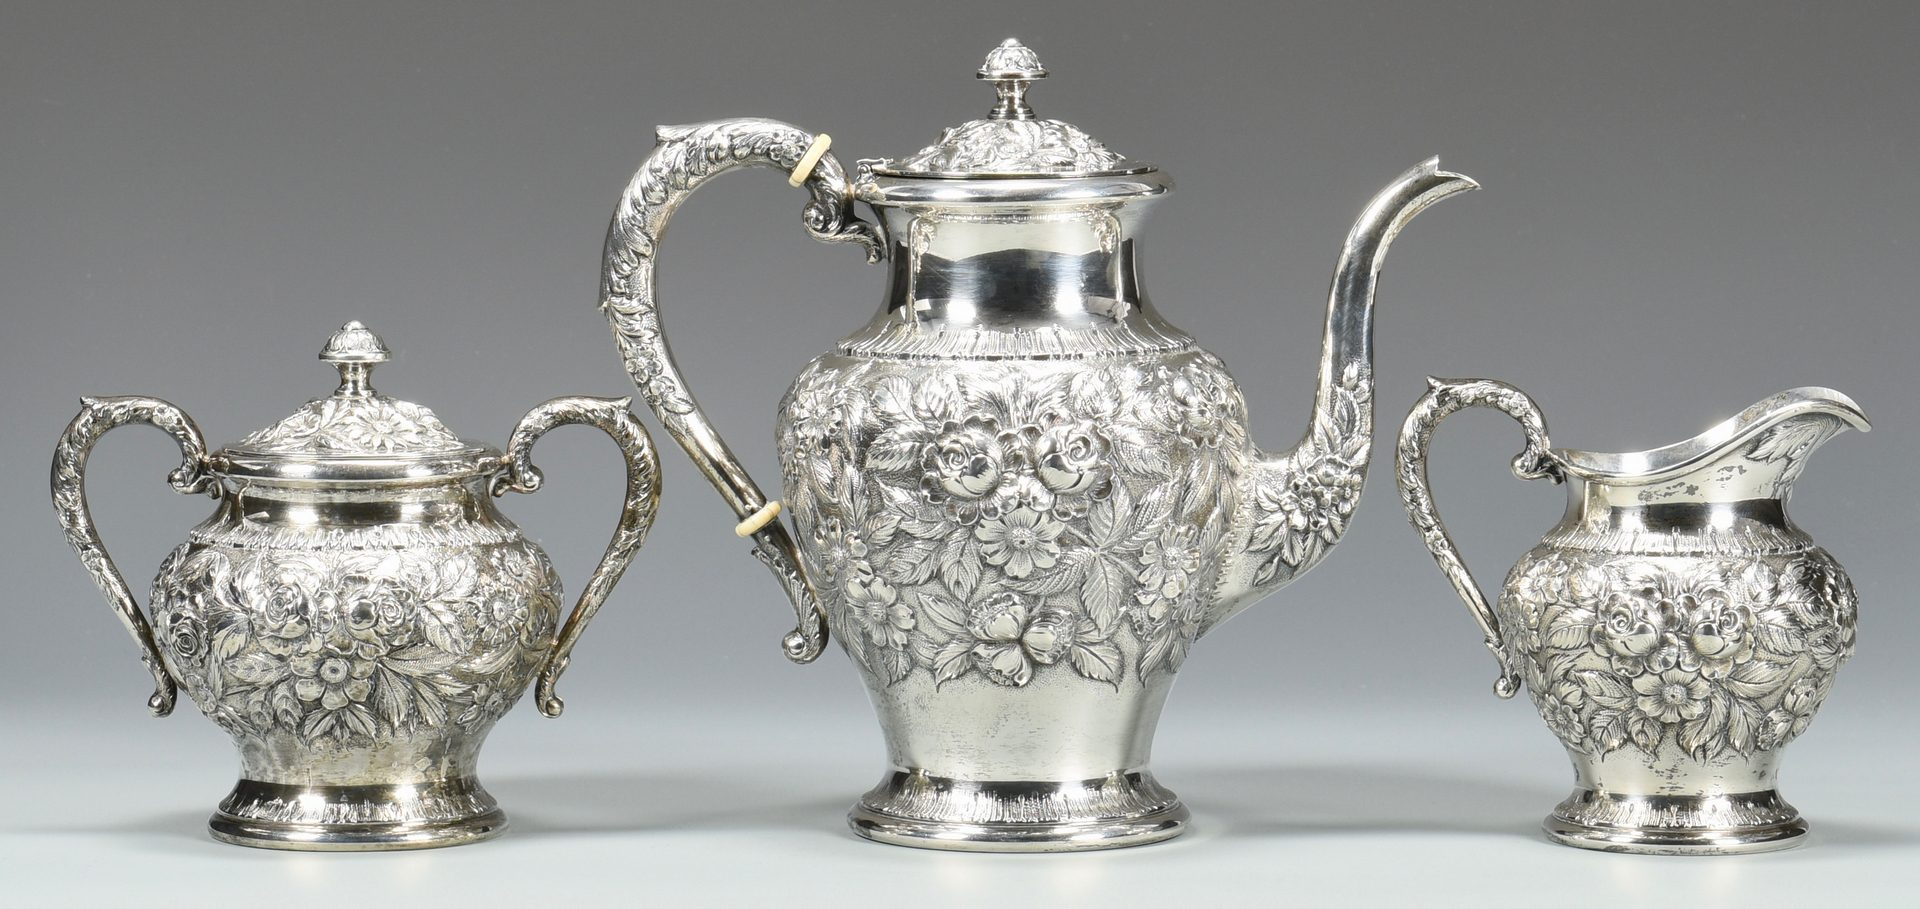 Lot 49: S. Kirk & Son 3 Pc. Repousse Tea Service